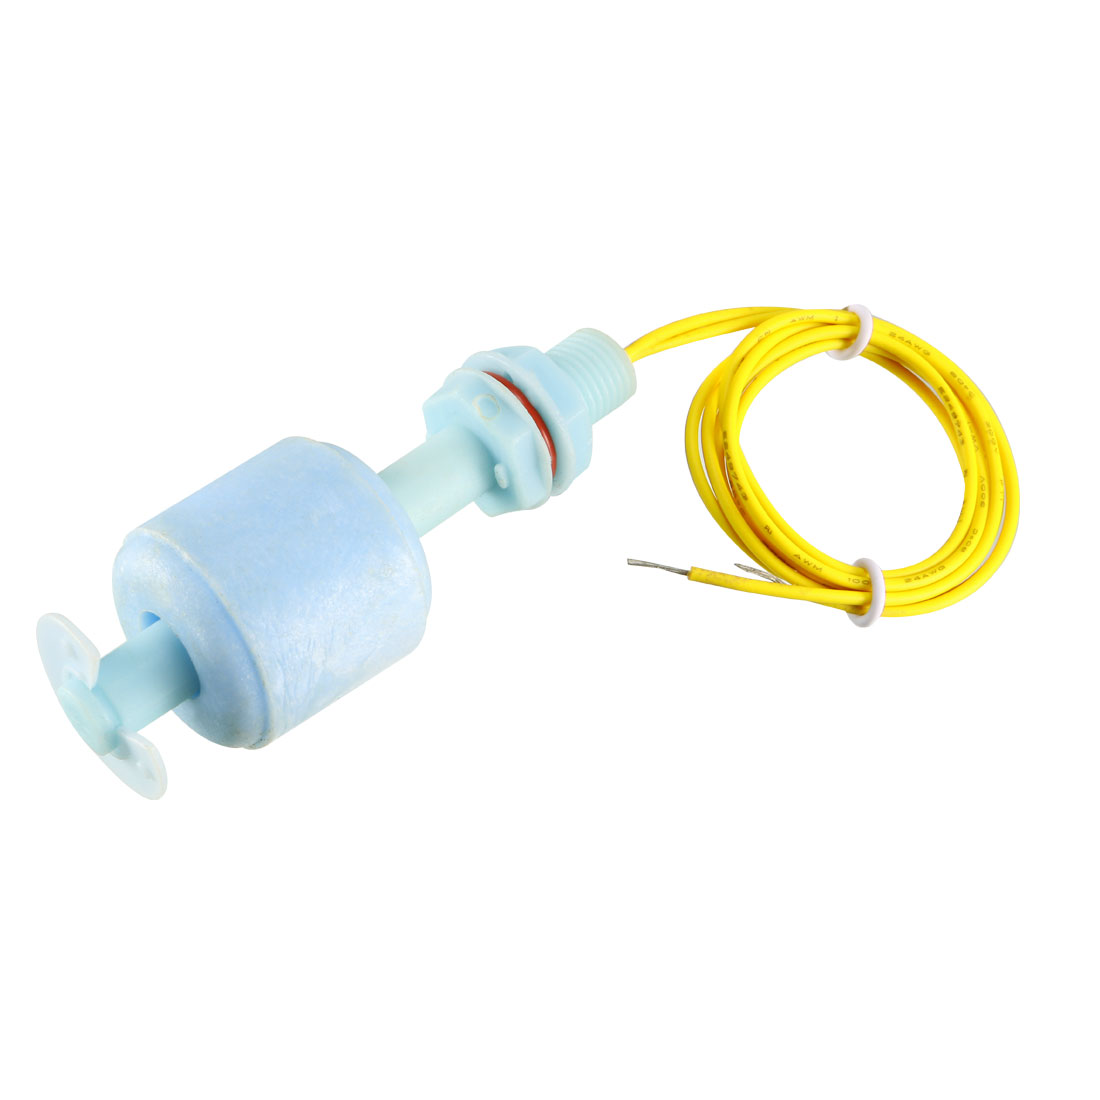 68mm PP Tank Pool Liquid Water Level Sensor Vertical Float Switch Blue